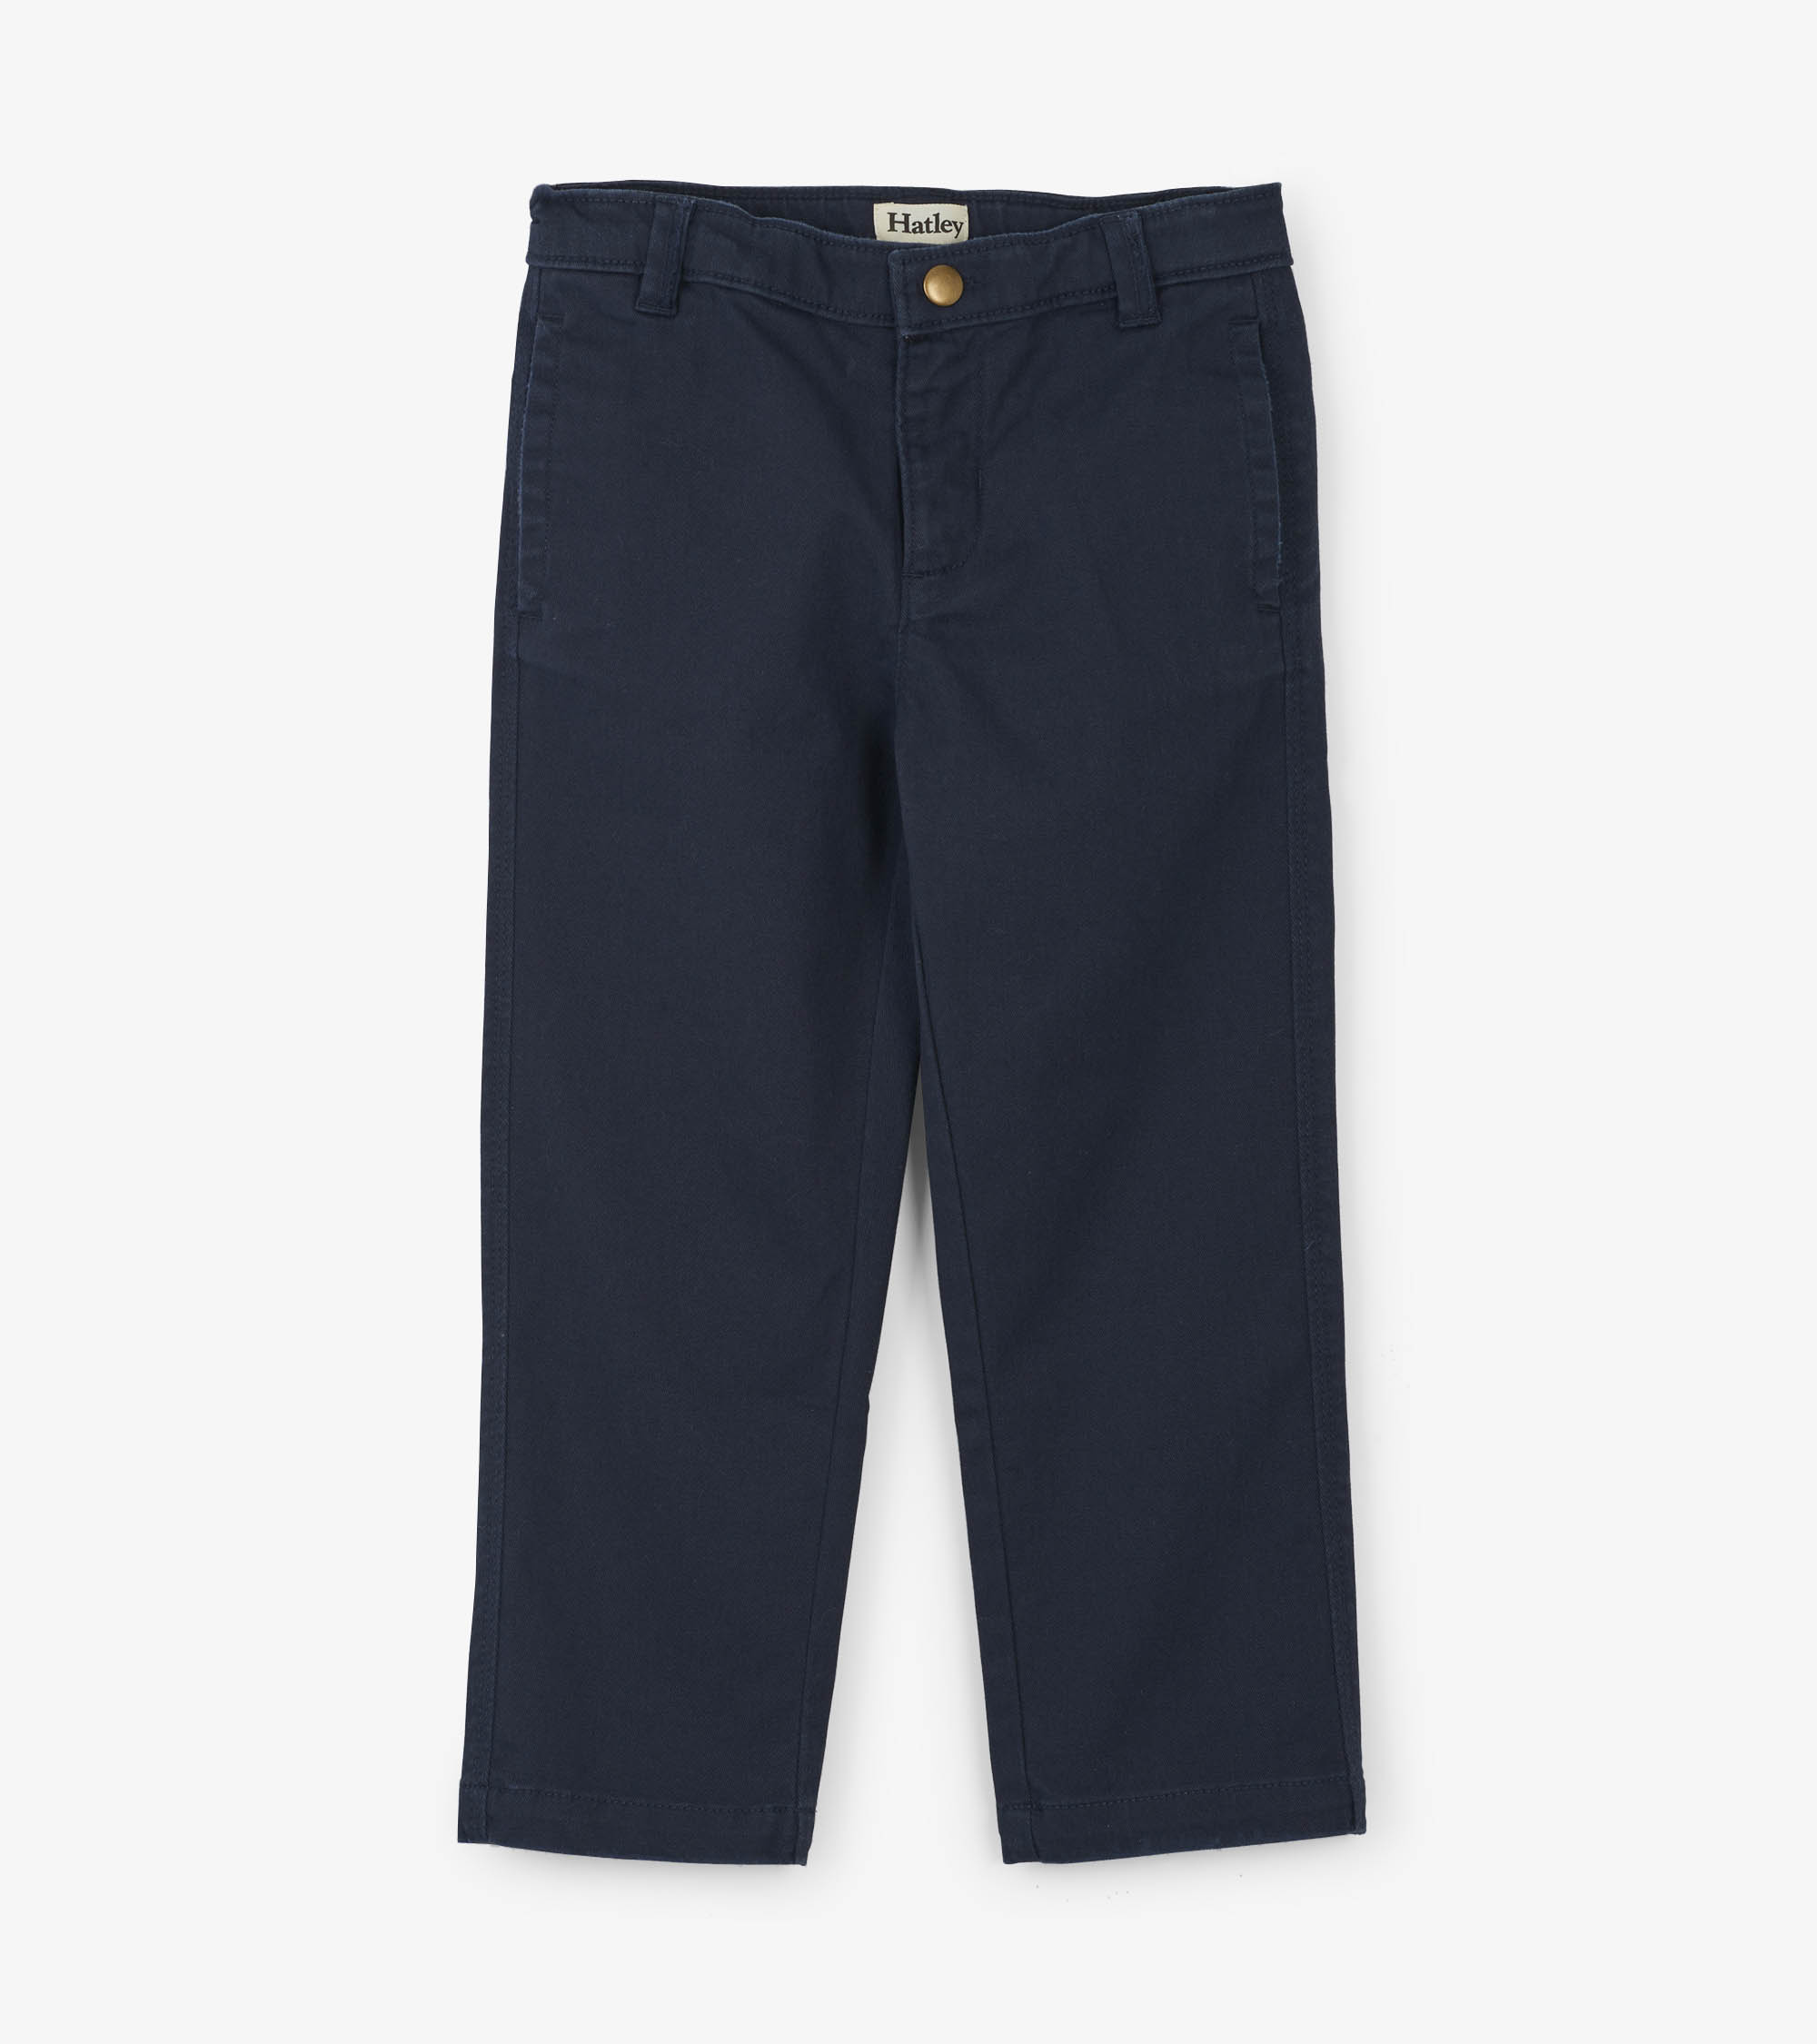 NOW £12 Hatley Trousers Navy (Was £24)